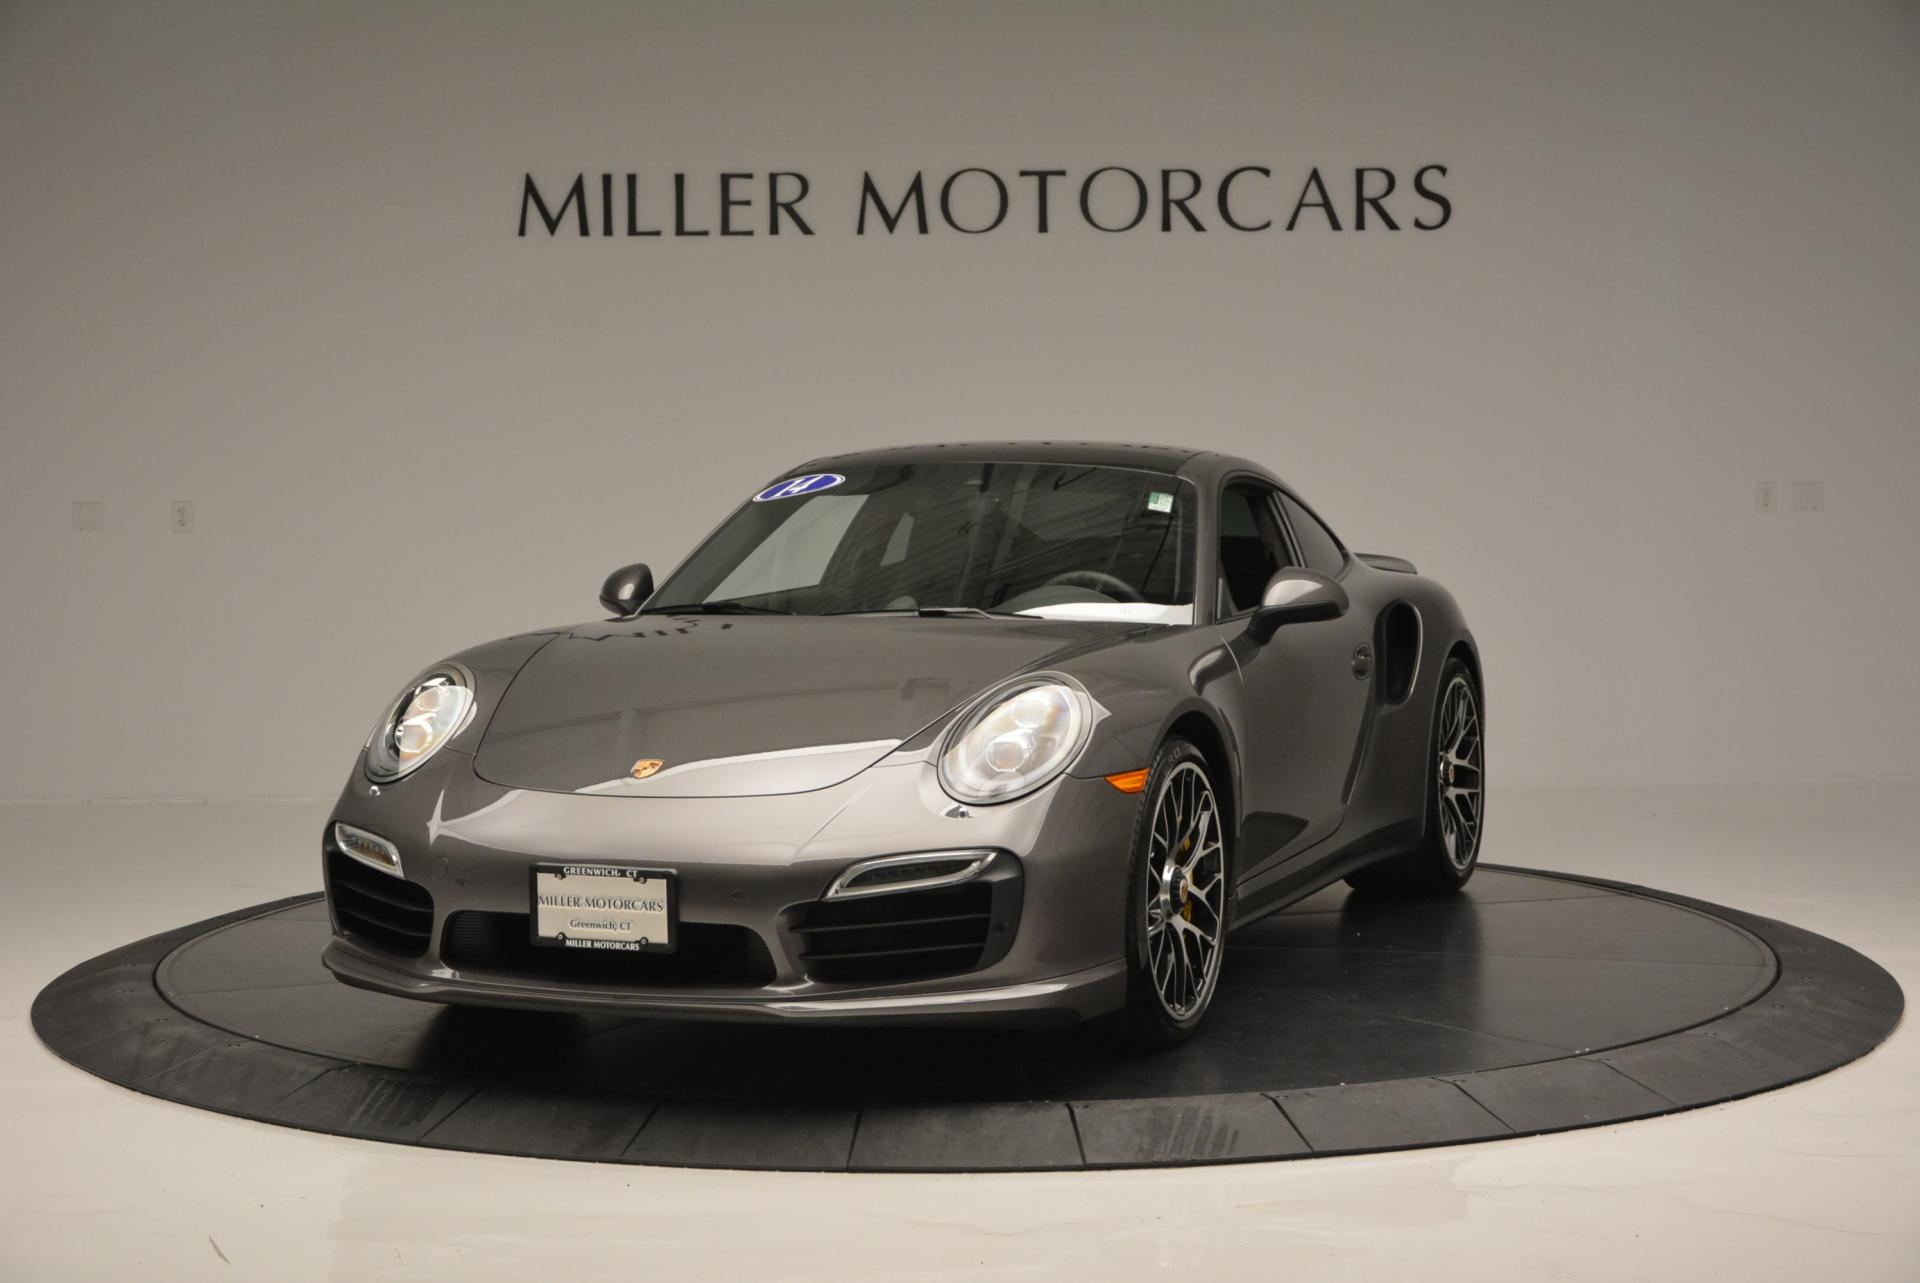 Used 2014 Porsche 911 Turbo S for sale Sold at Alfa Romeo of Greenwich in Greenwich CT 06830 1